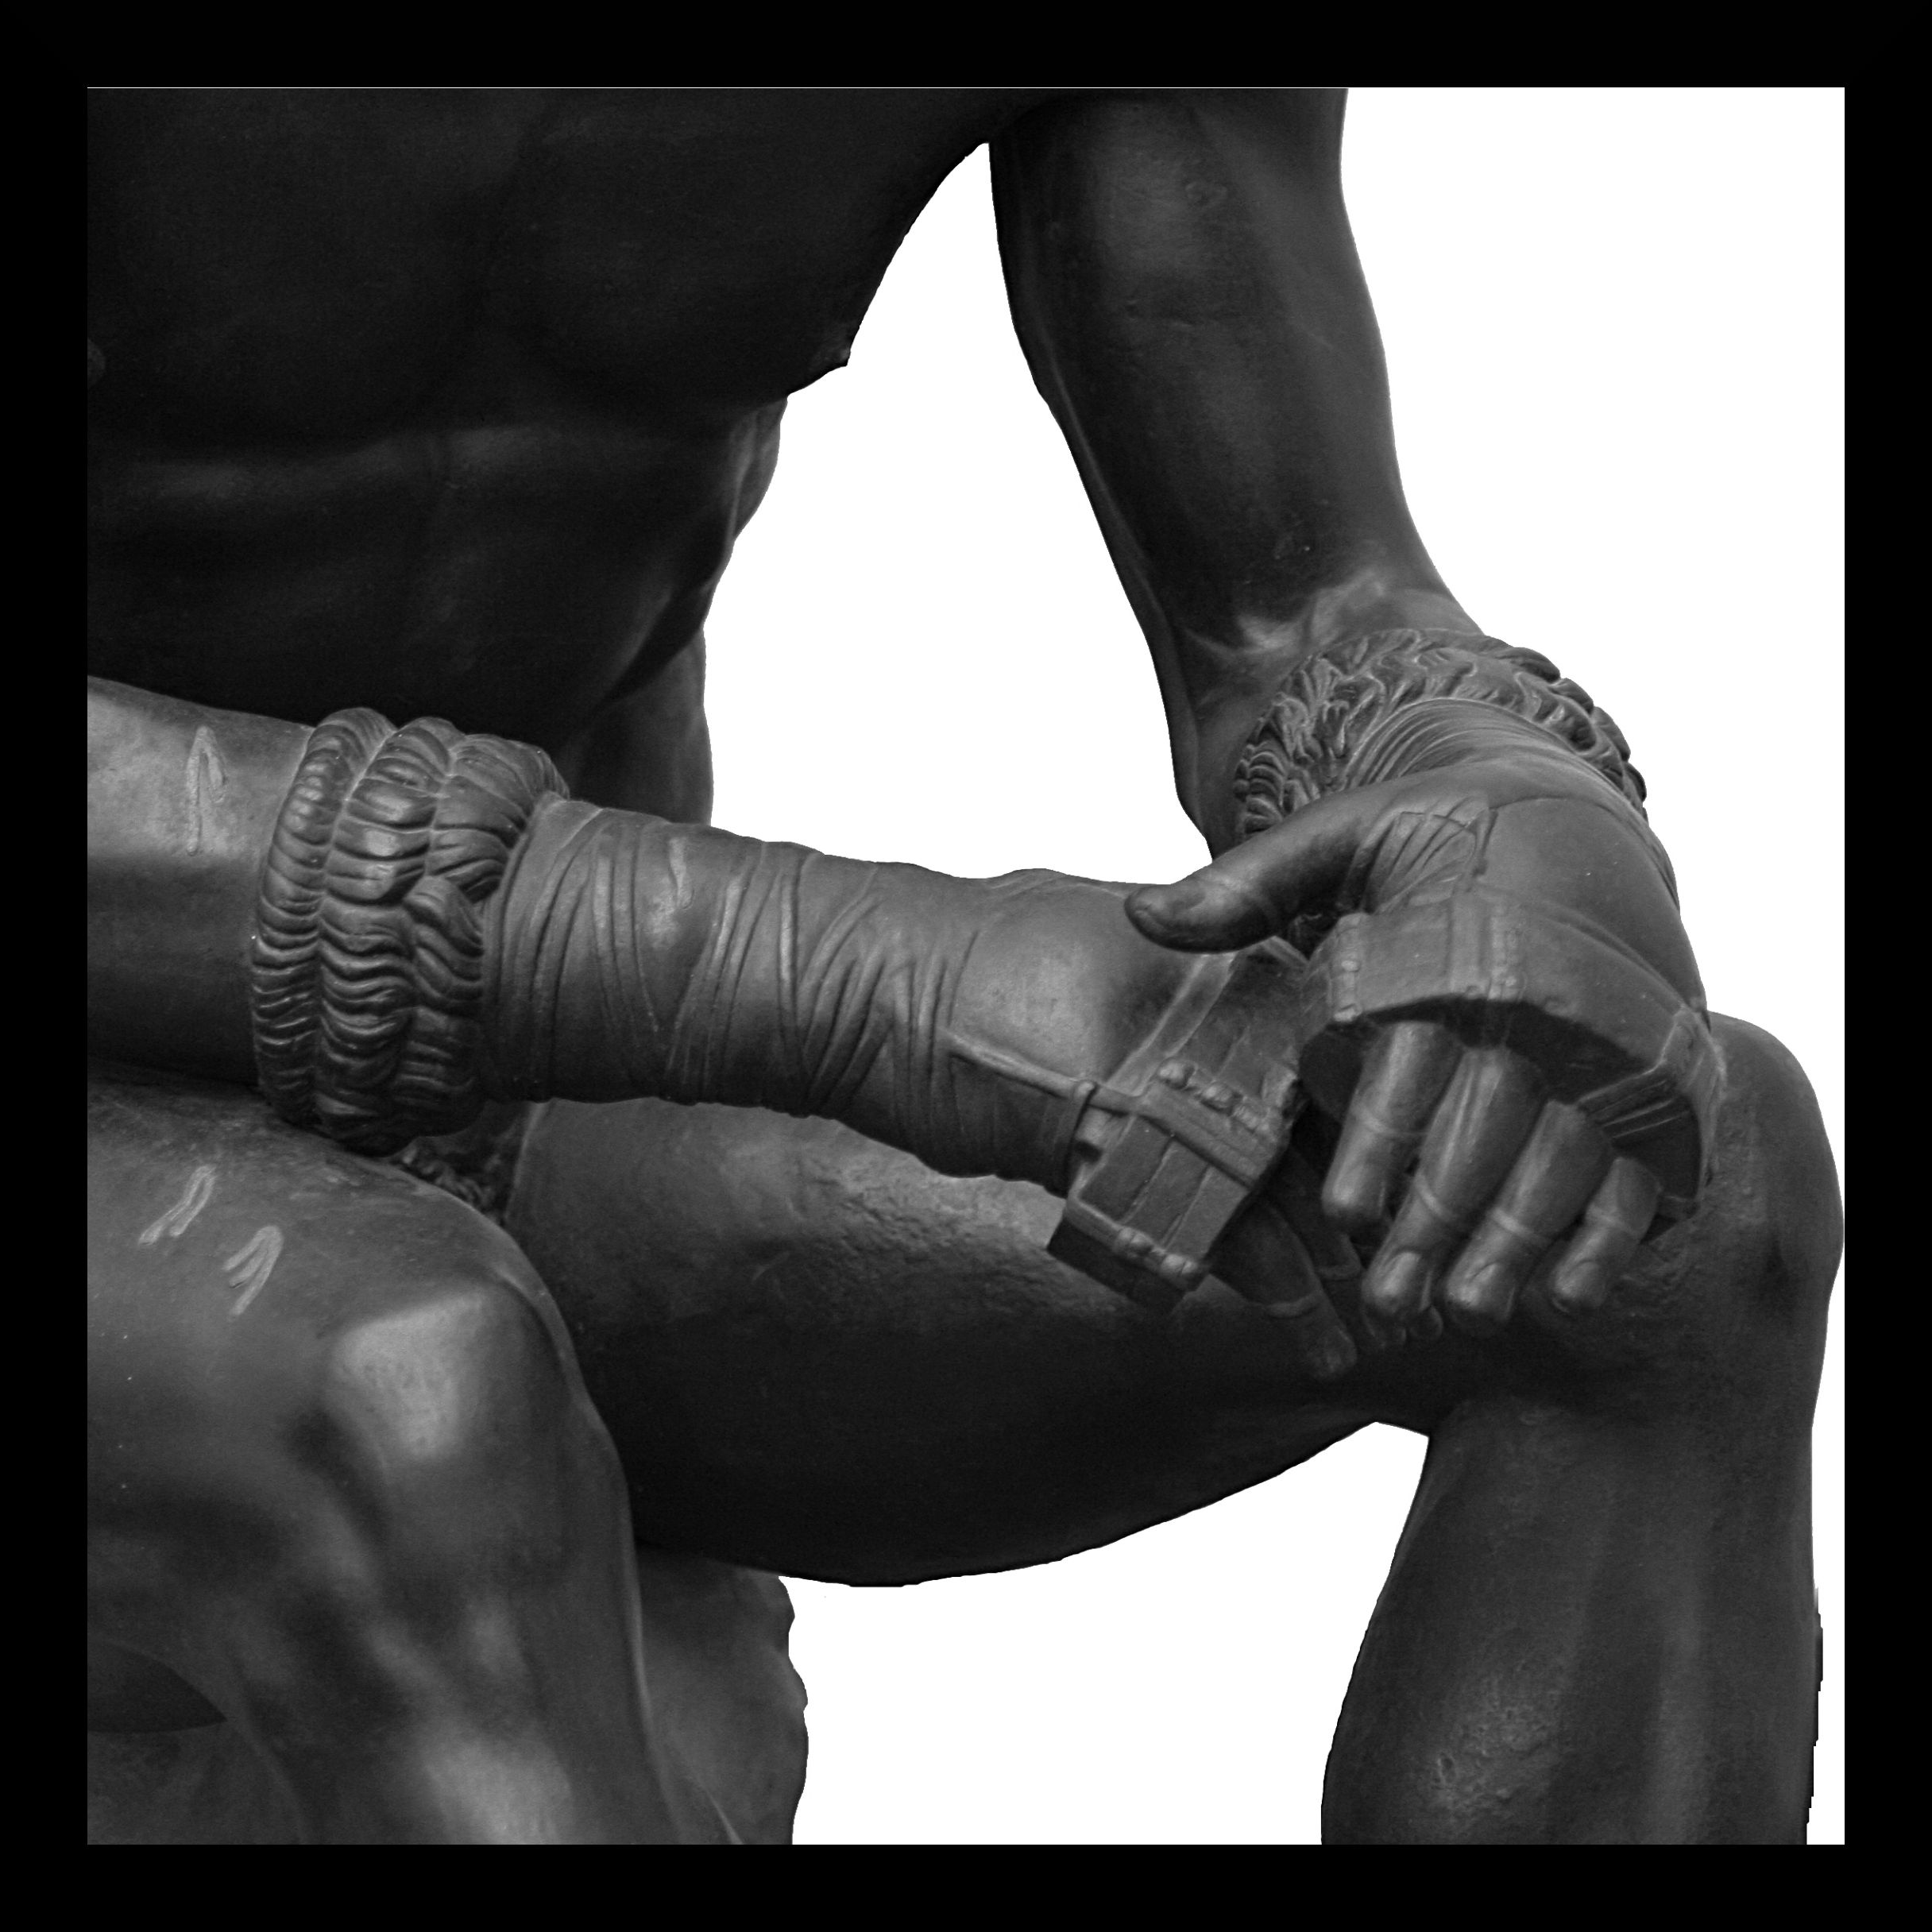 Boxer_of_quirinal_hands.jpg